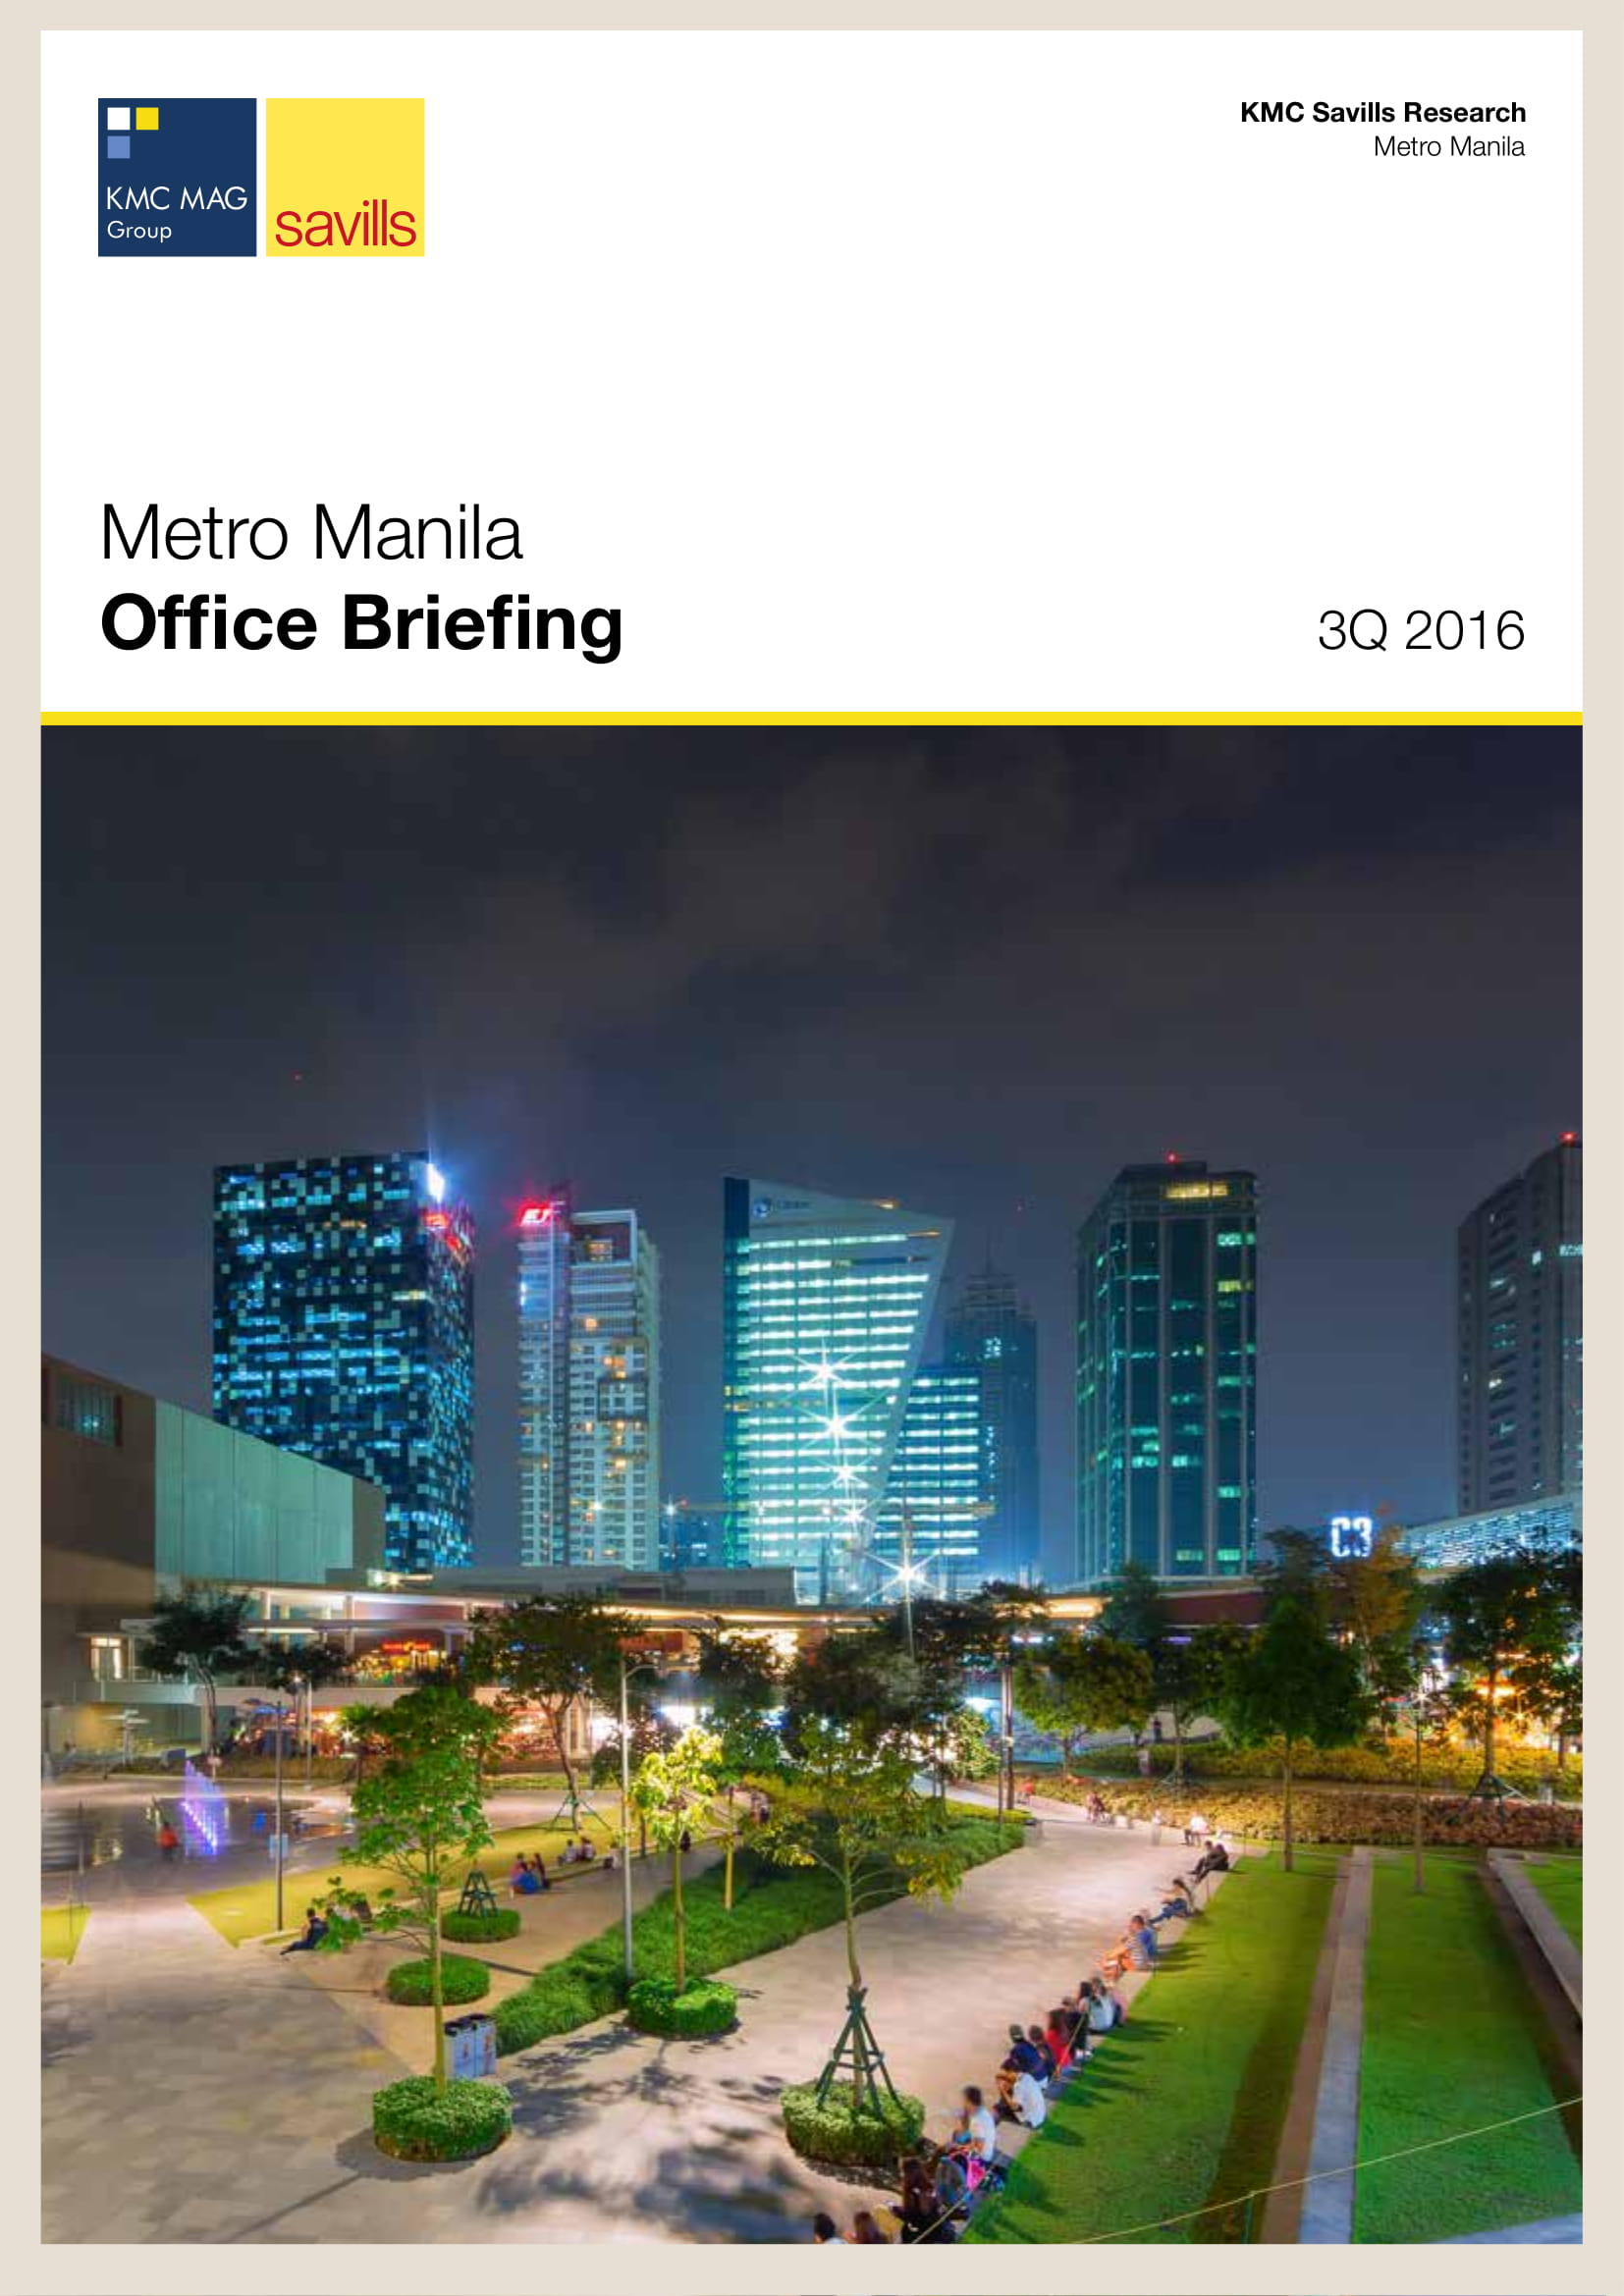 Metro Manila Office Briefing 3Q 2016